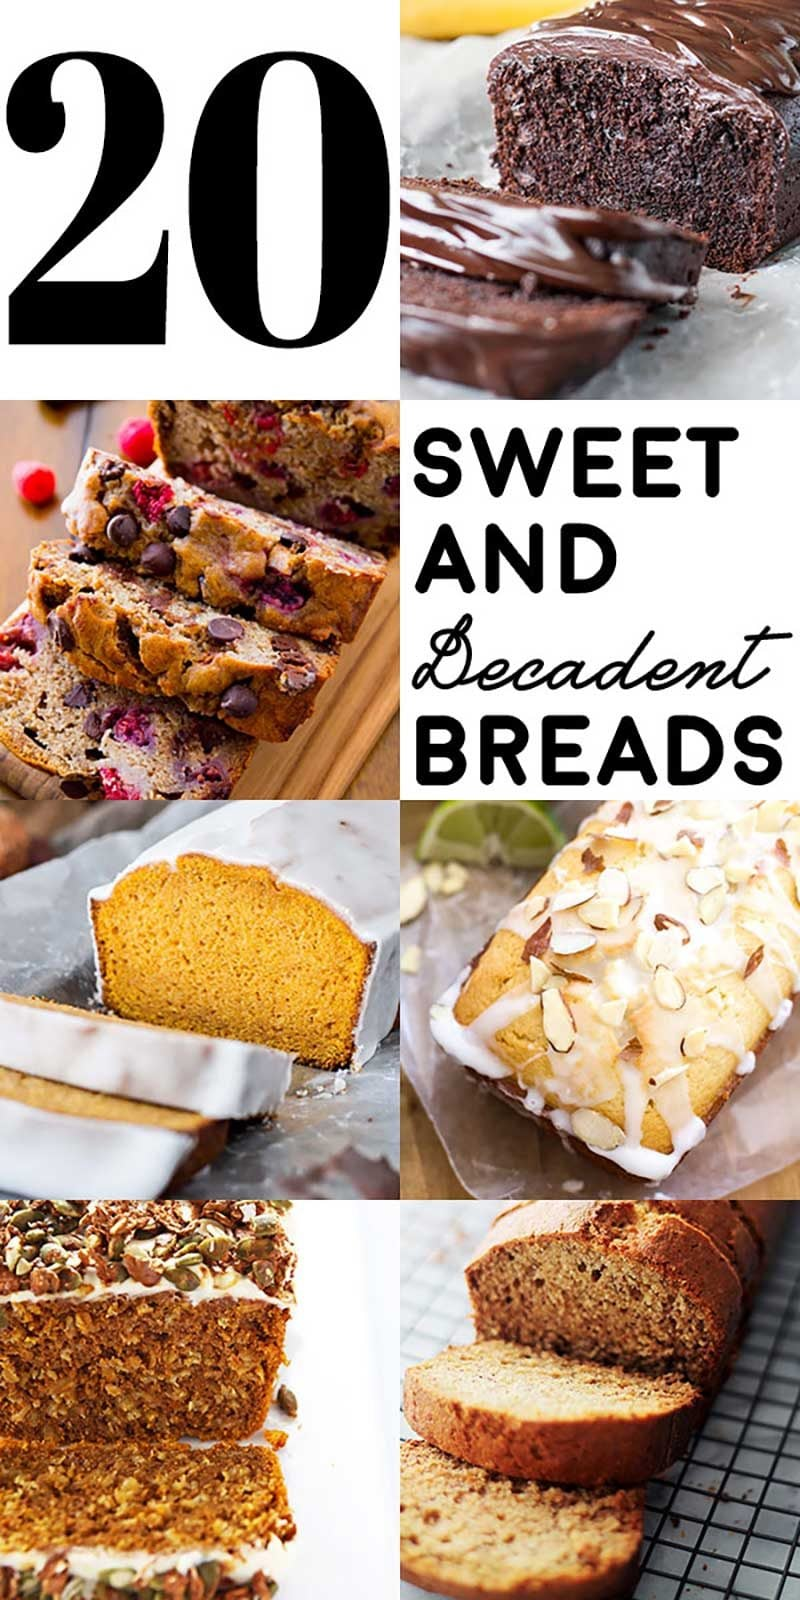 20 Sweet and Decadent Breads! Whether it's for breakfast, lunch, or dinner, these sweet and decadent dessert breads are the perfect fix to your cravings! | HomemadeHooplah.com